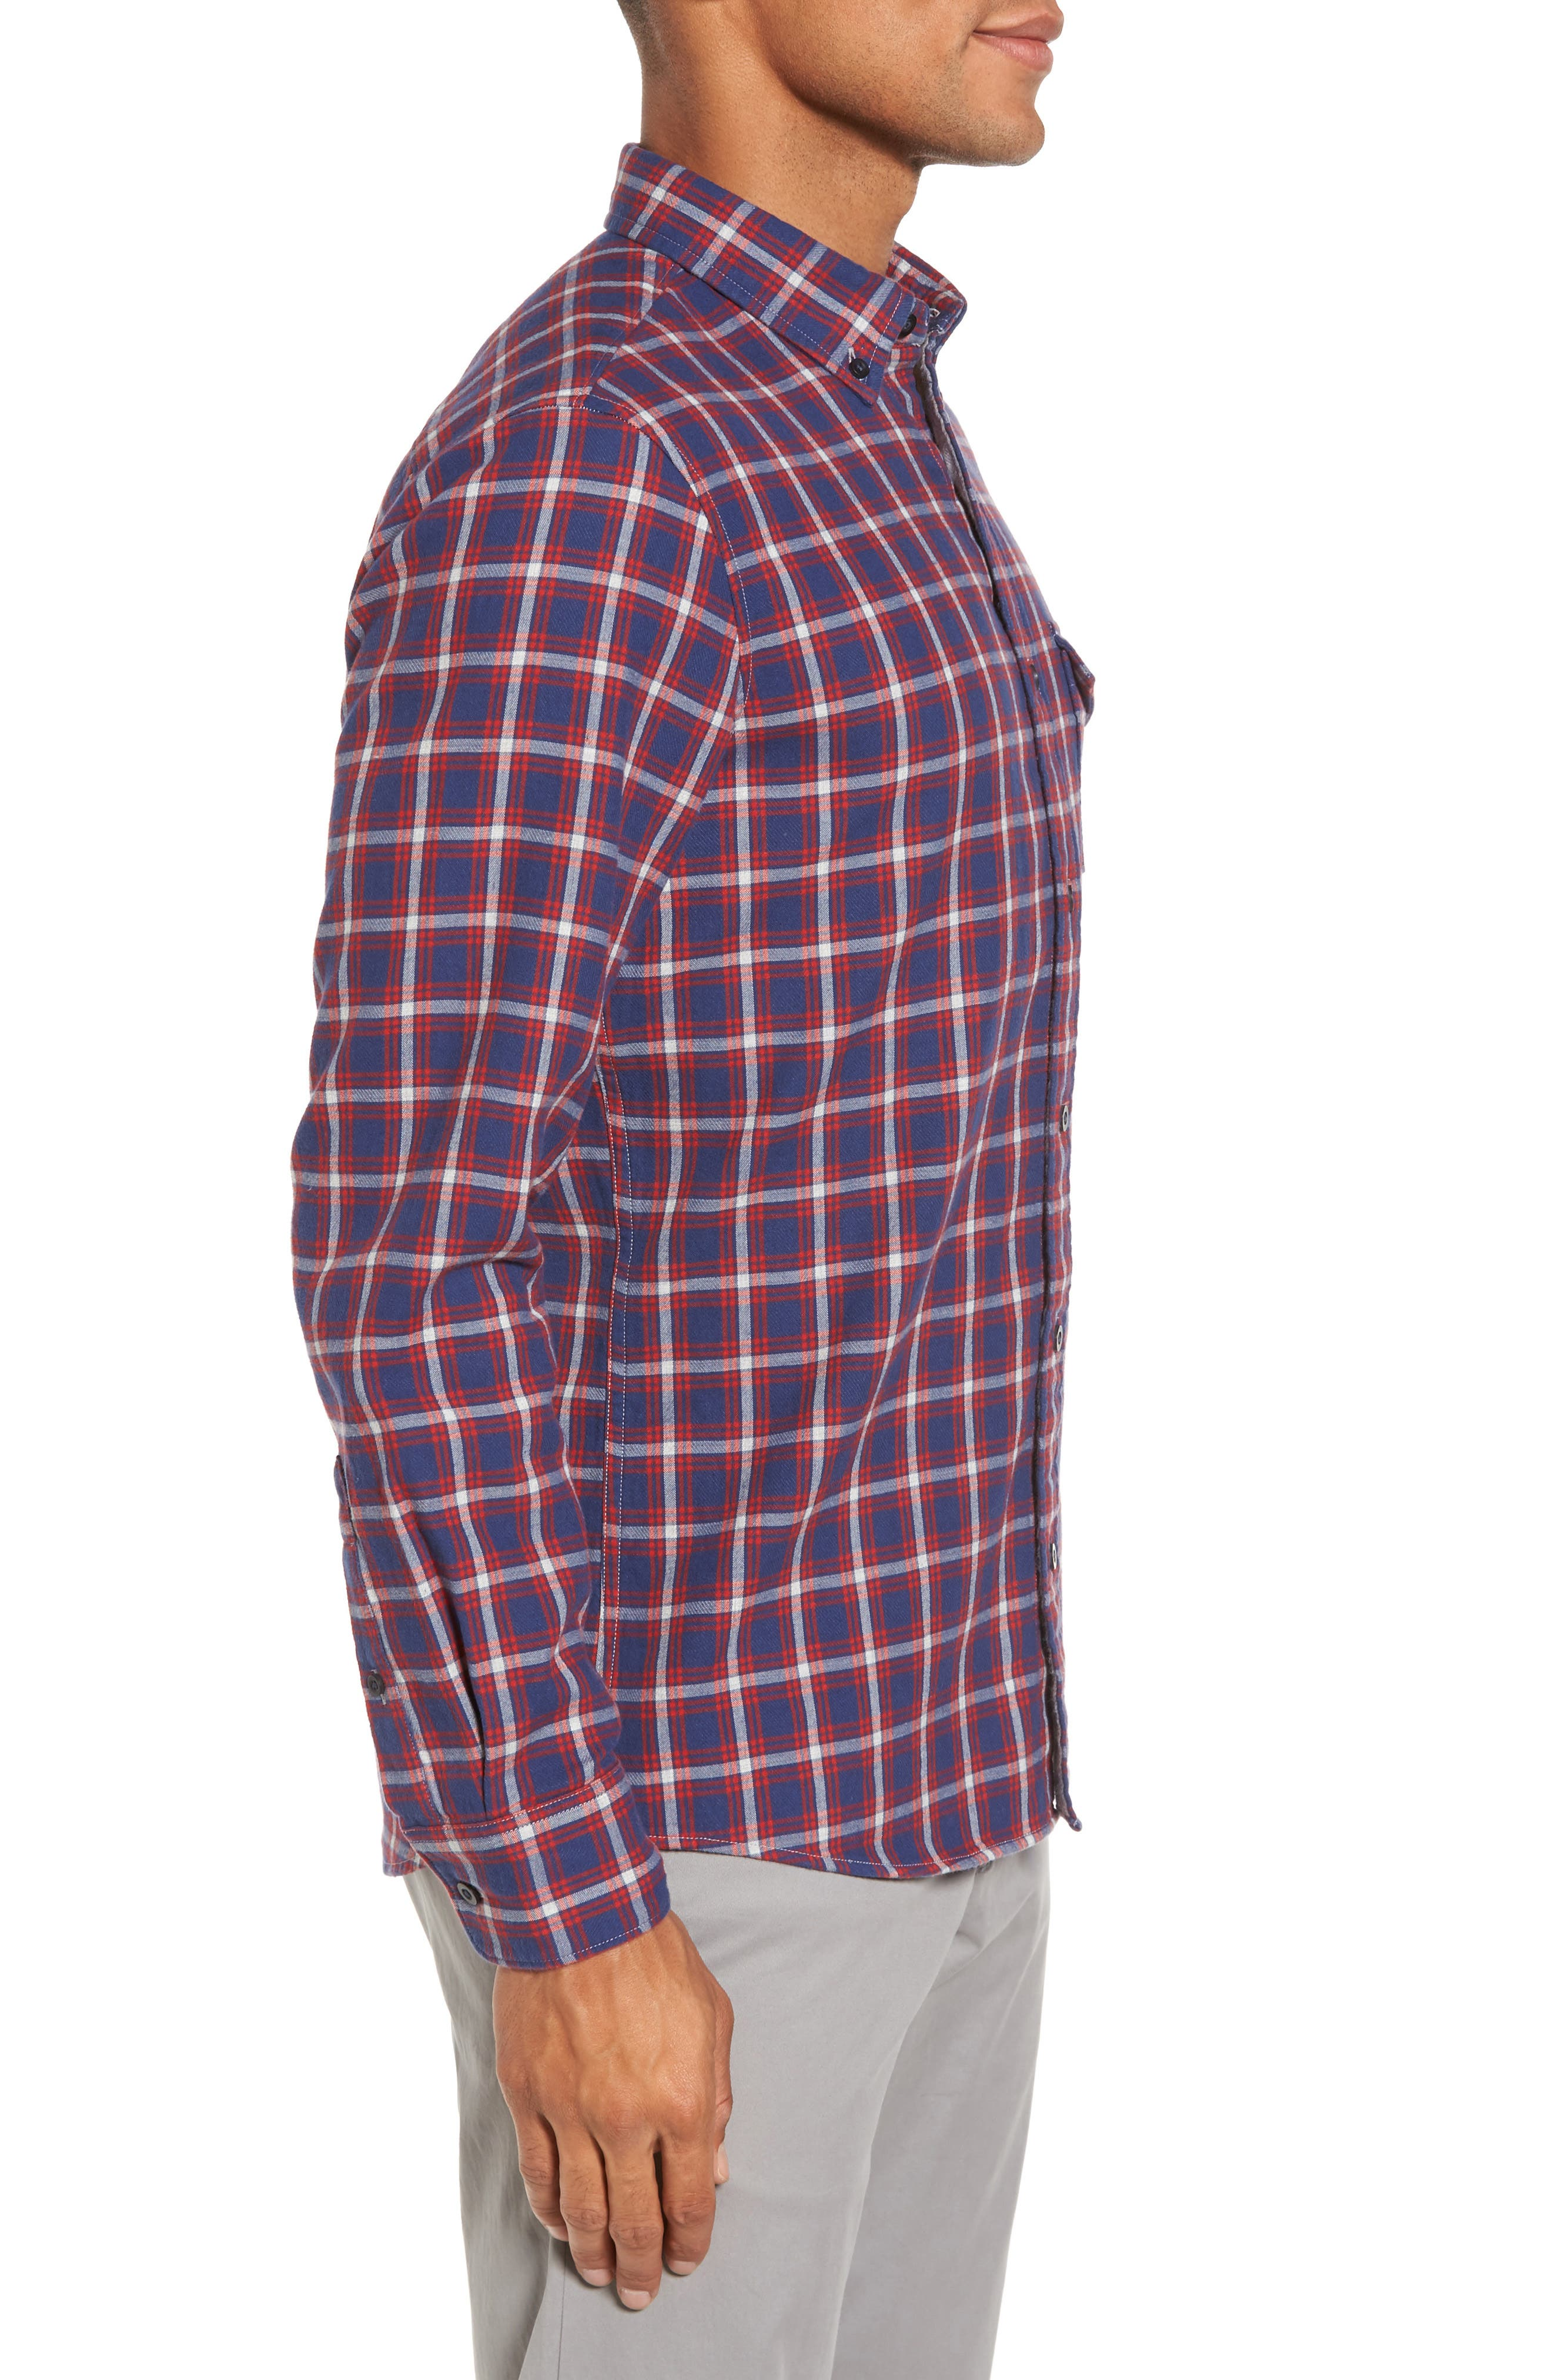 Trim Fit Duofold Check Sport Shirt,                             Alternate thumbnail 3, color,                             Navy Iris Red Plaid Duofold